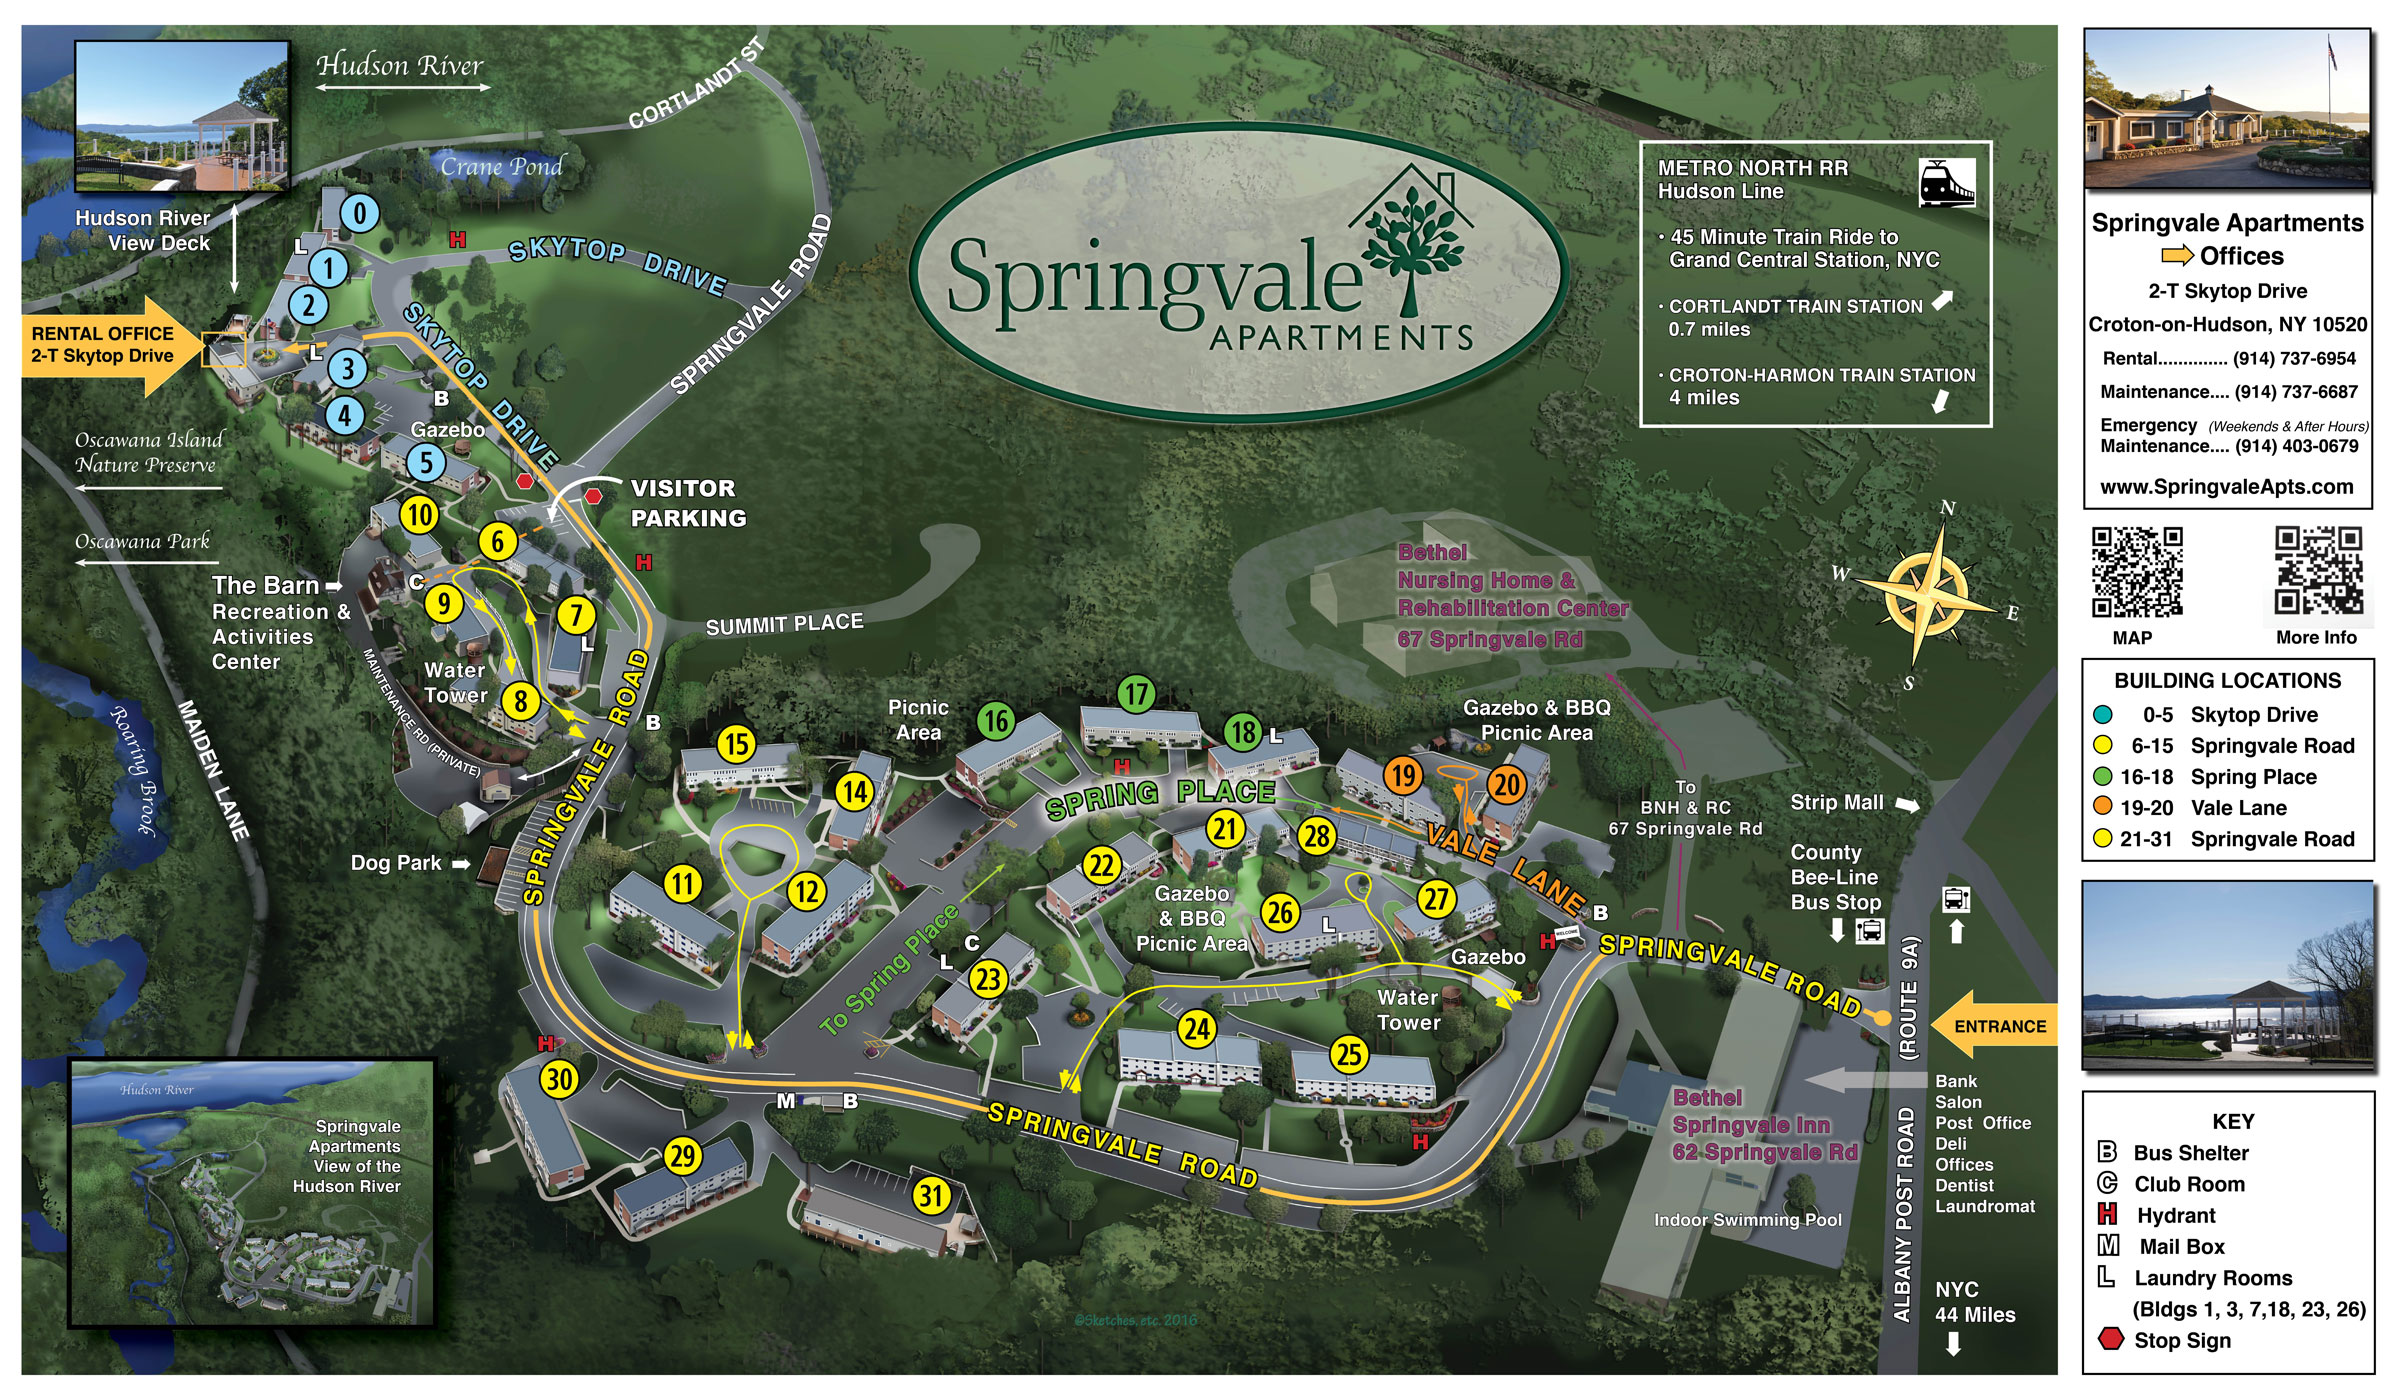 Map of Springvale Apartments